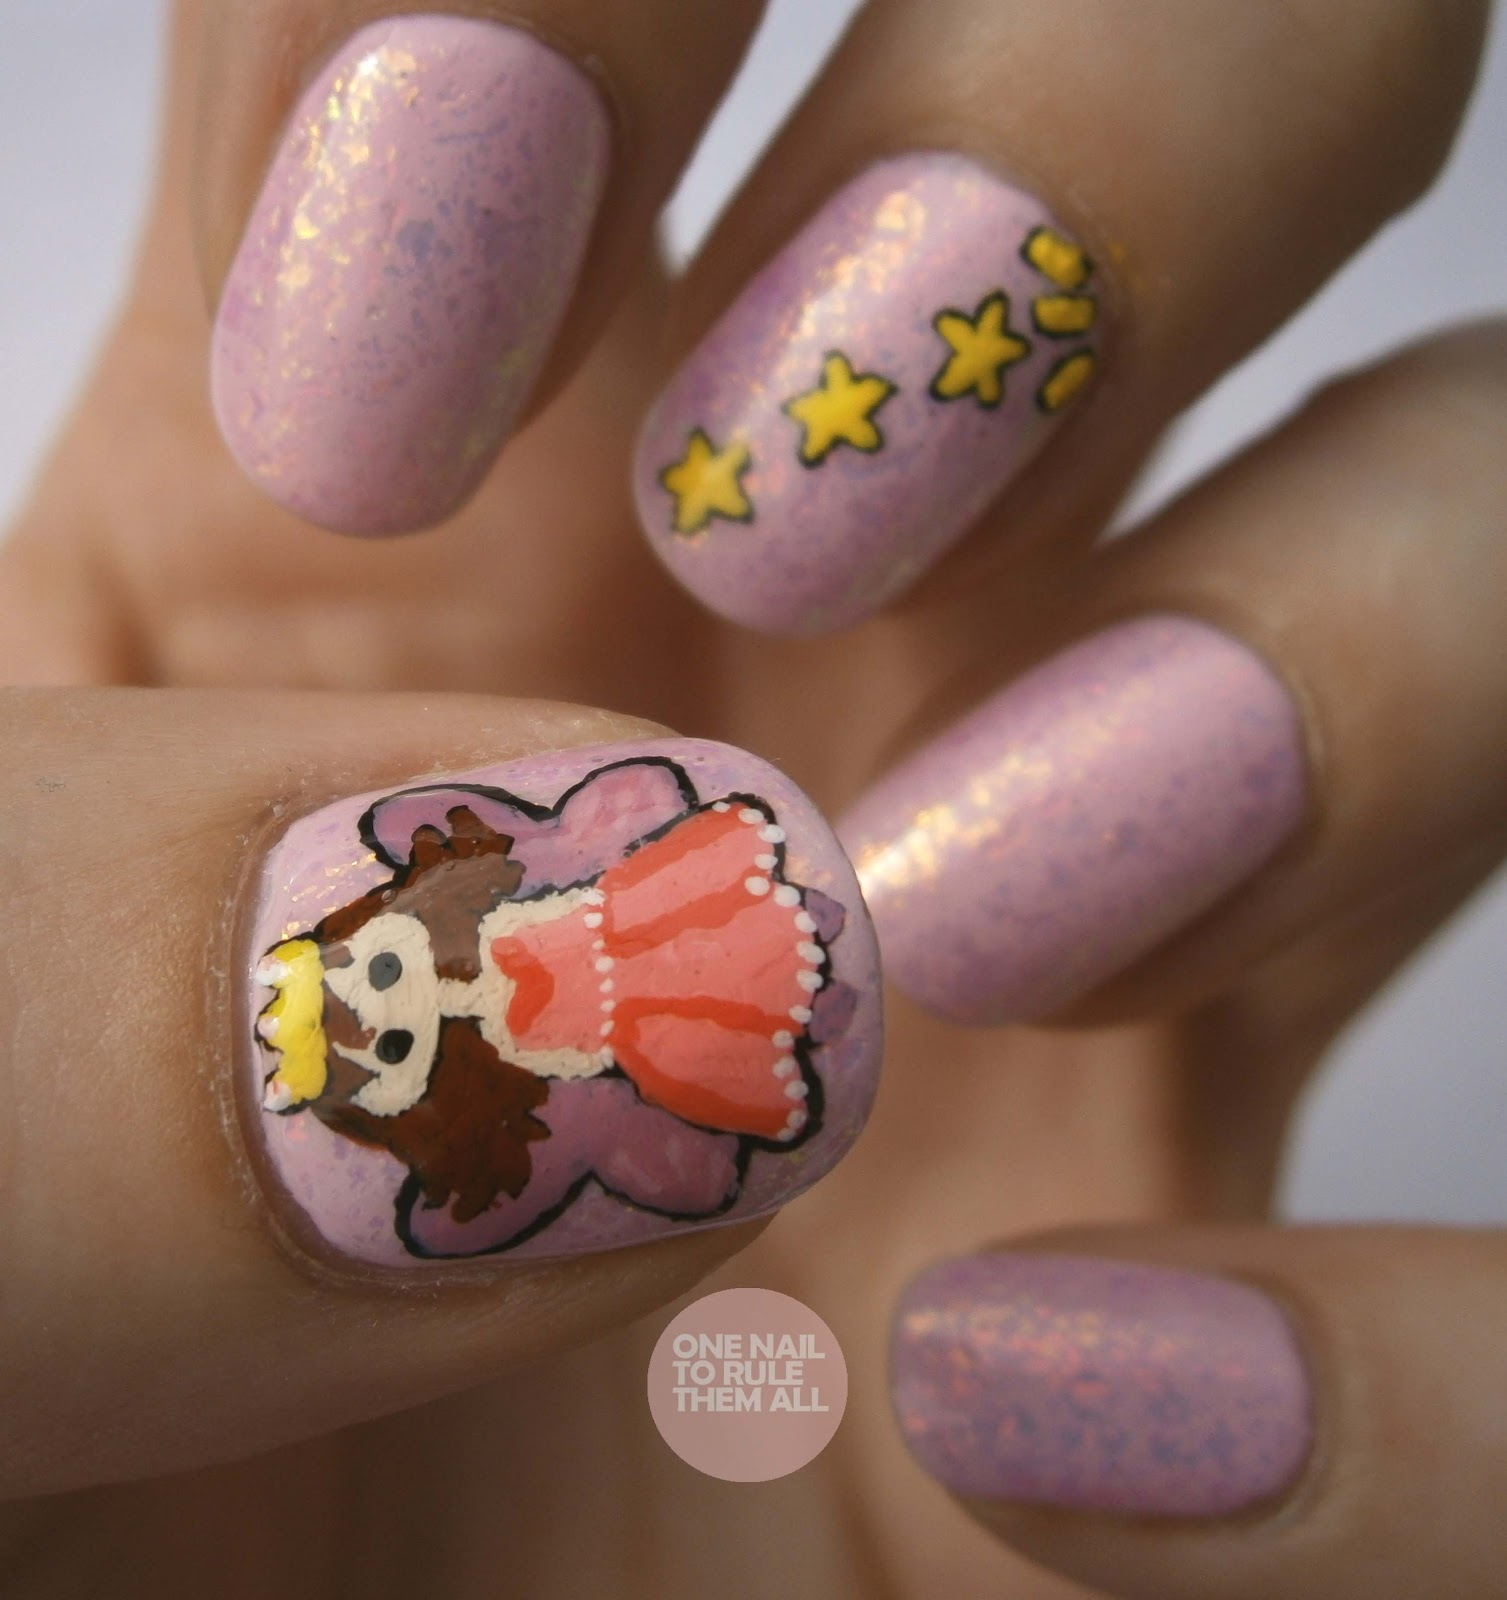 Fairy Nail Art: One Nail To Rule Them All: Day 15: Delicate Print